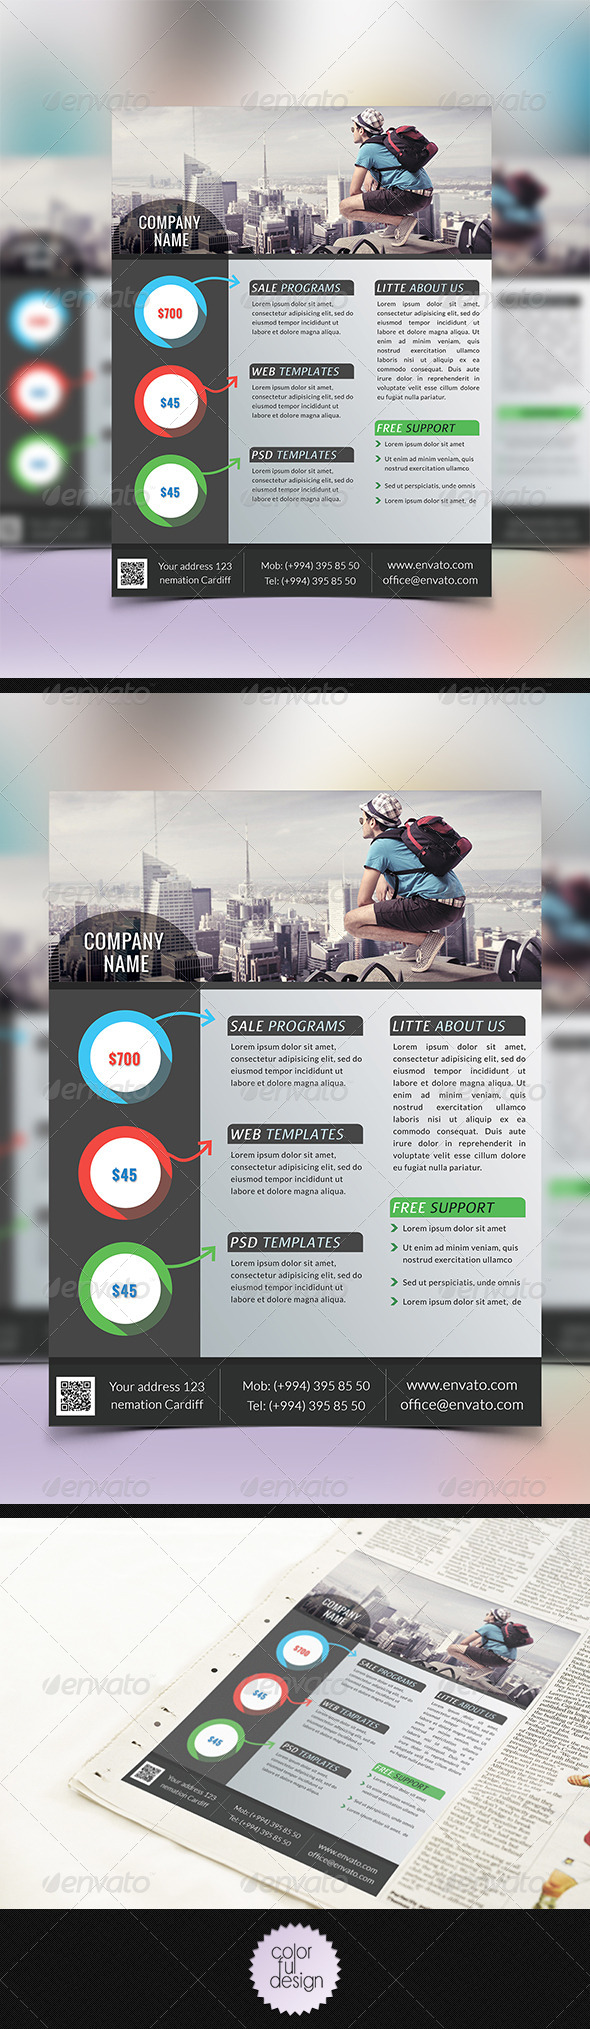 GraphicRiver Corporate Flyer Template 8373442